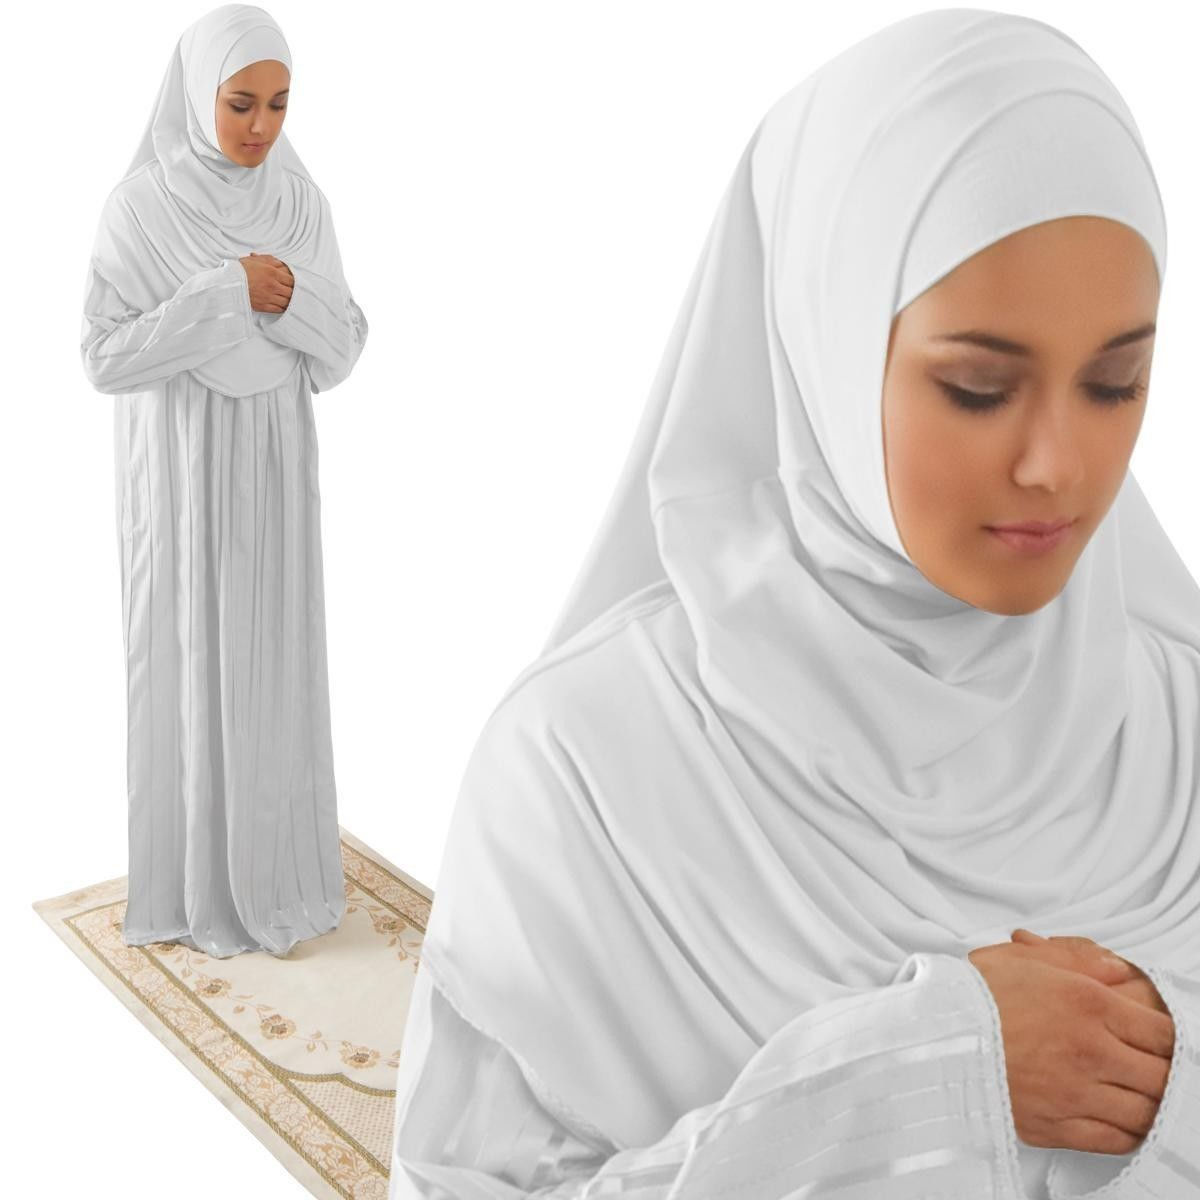 One Peice Full Length with Sleeve  Prayer Hijab Also use for Hajj and Umrah,Abay